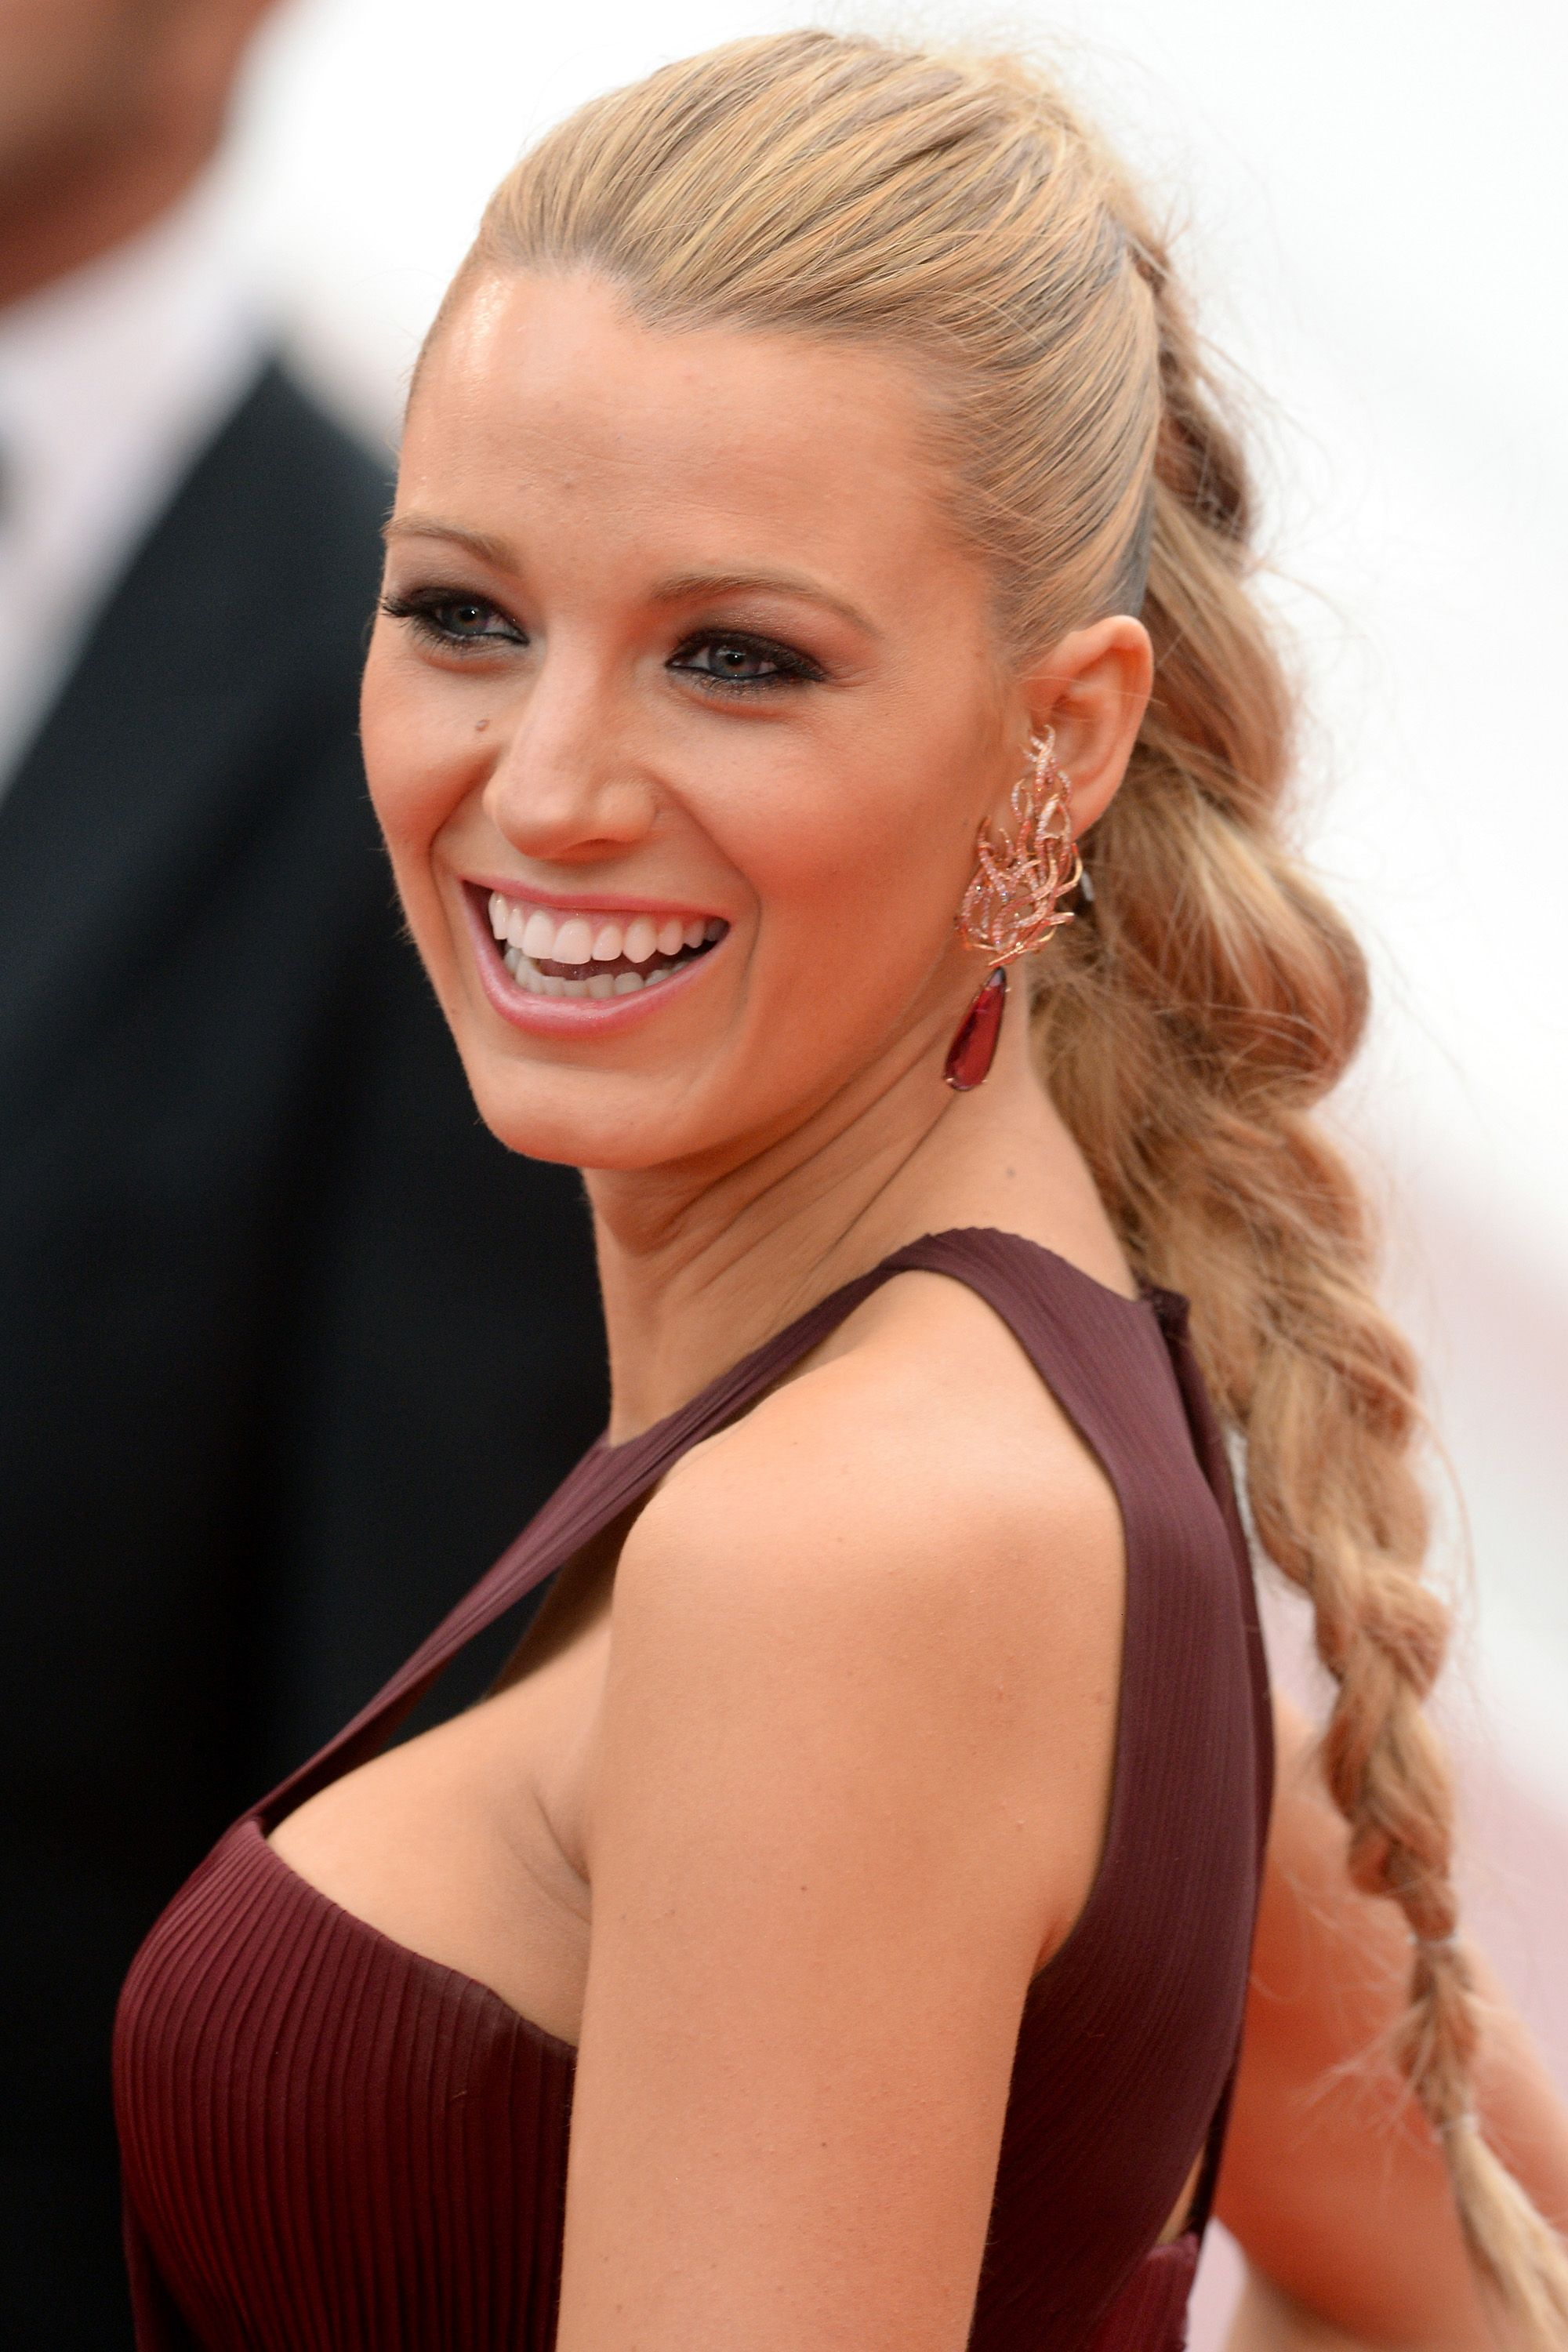 18 iconic ponytails - best celebrity ponytail hairstyles